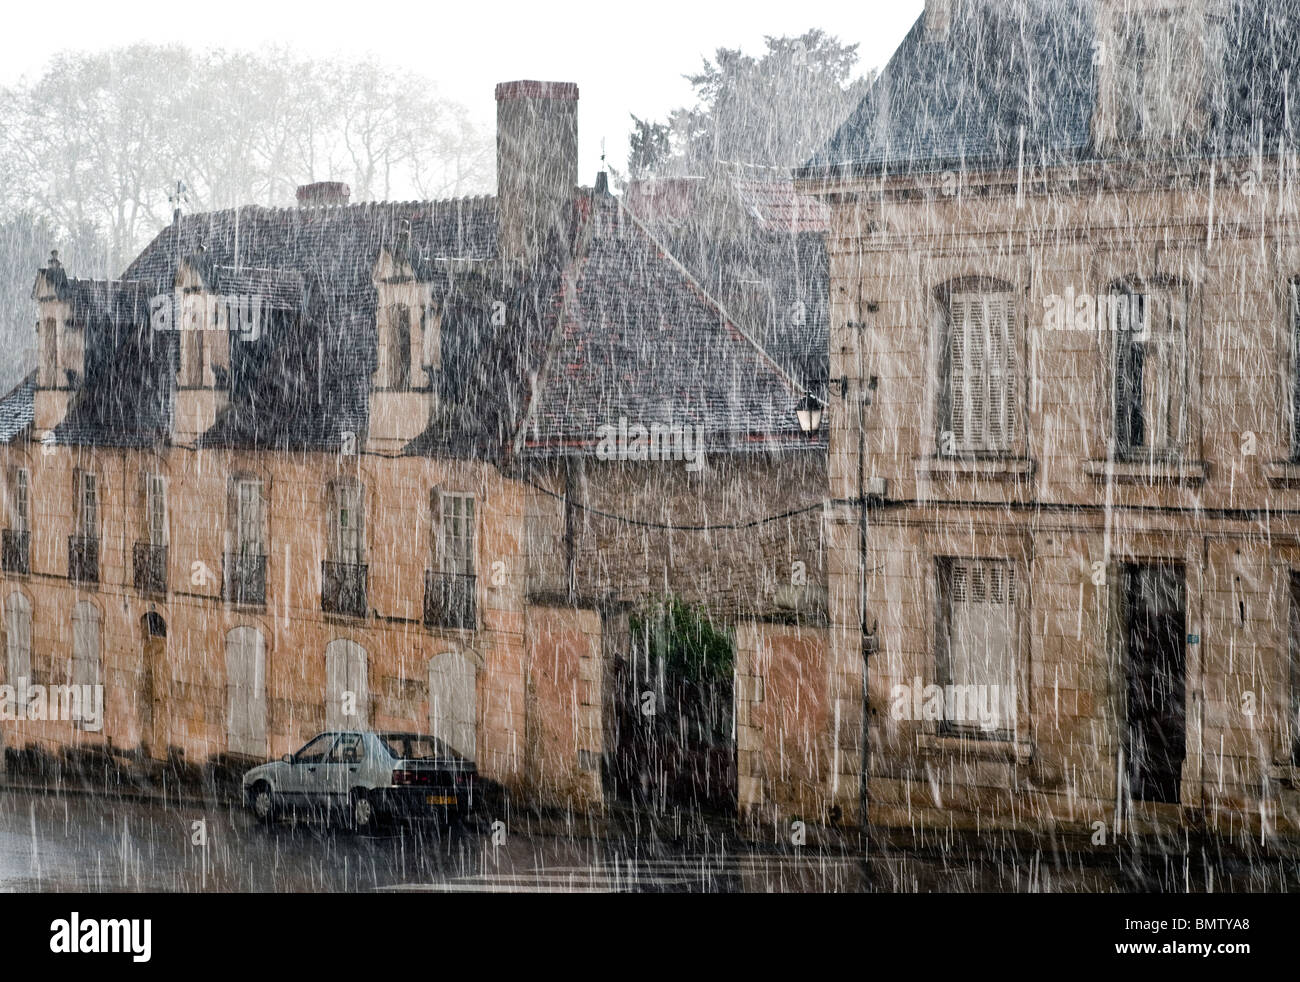 Torrential rainstorm in old town centre - France. - Stock Image